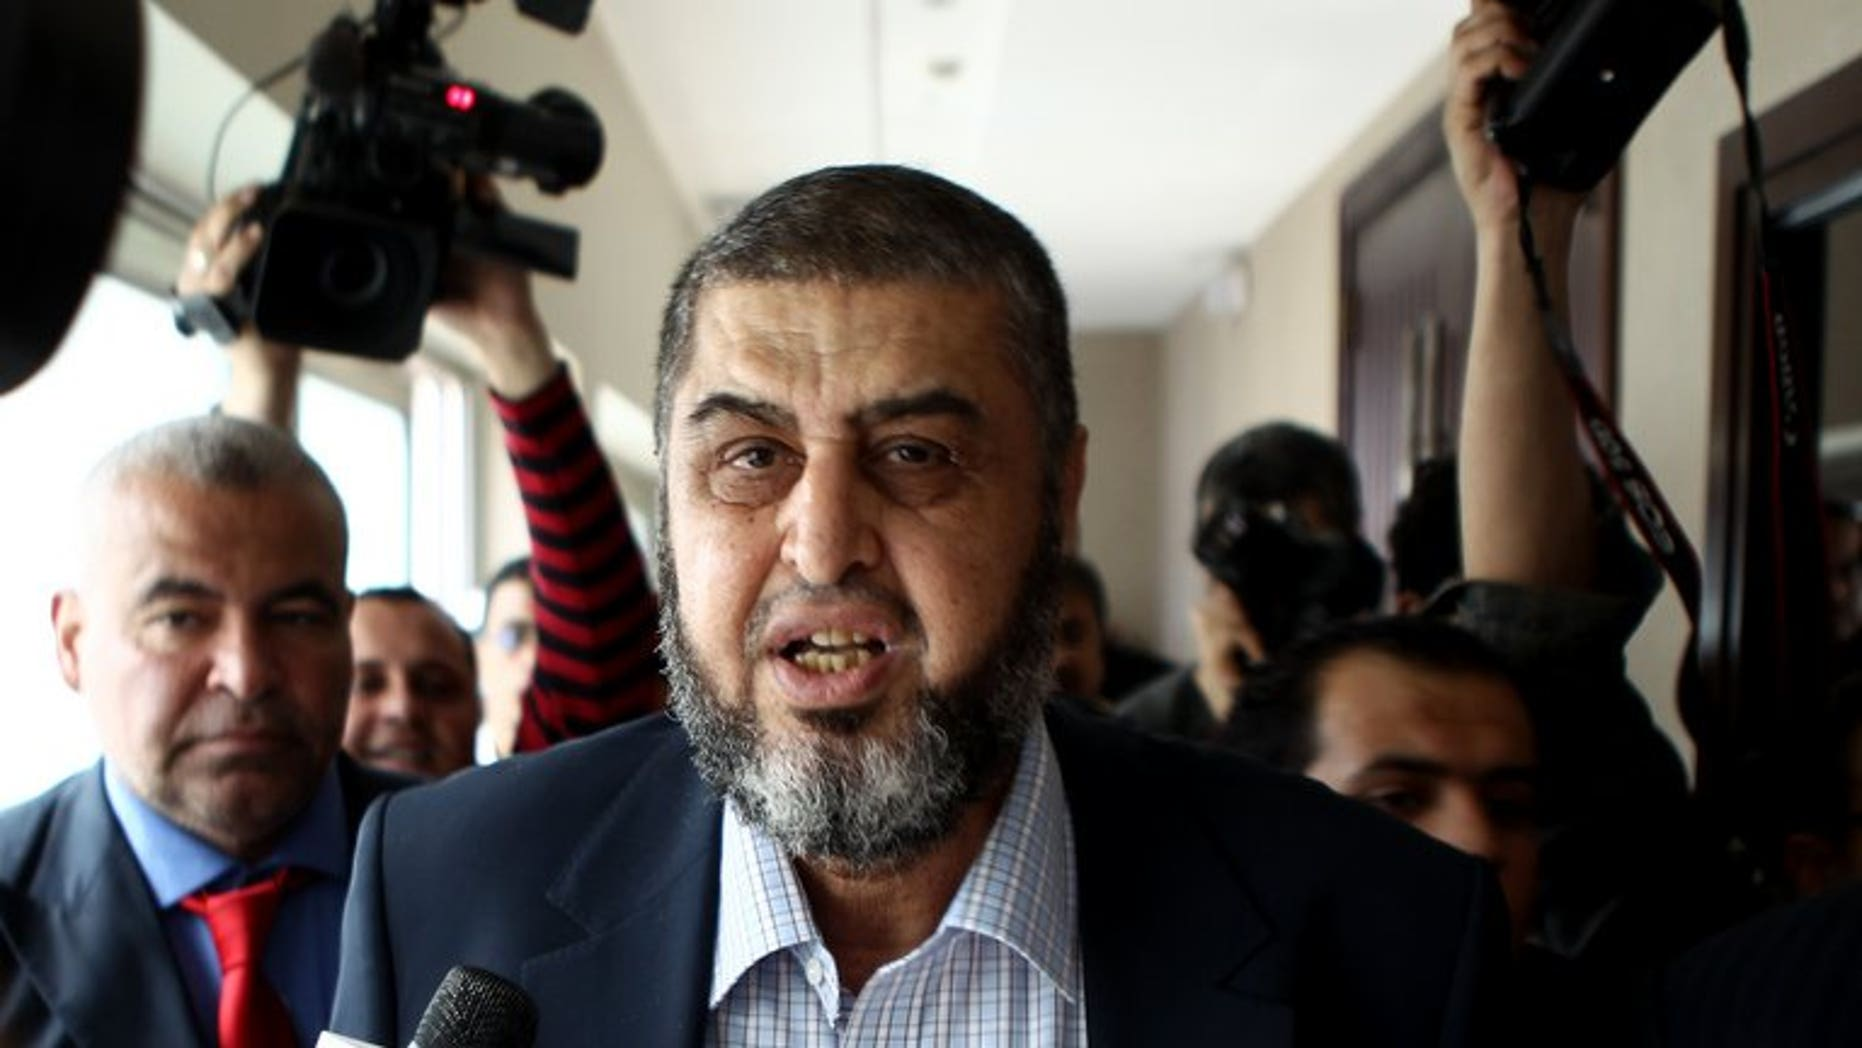 Khairat el-Shater leaves following a press conference in Cairo on April 9, 2012. Egyptian police arrested Shater, widely seen as the most influential Islamist politician behind deposed president Mohamed Morsi, an interior ministry general told AFP.